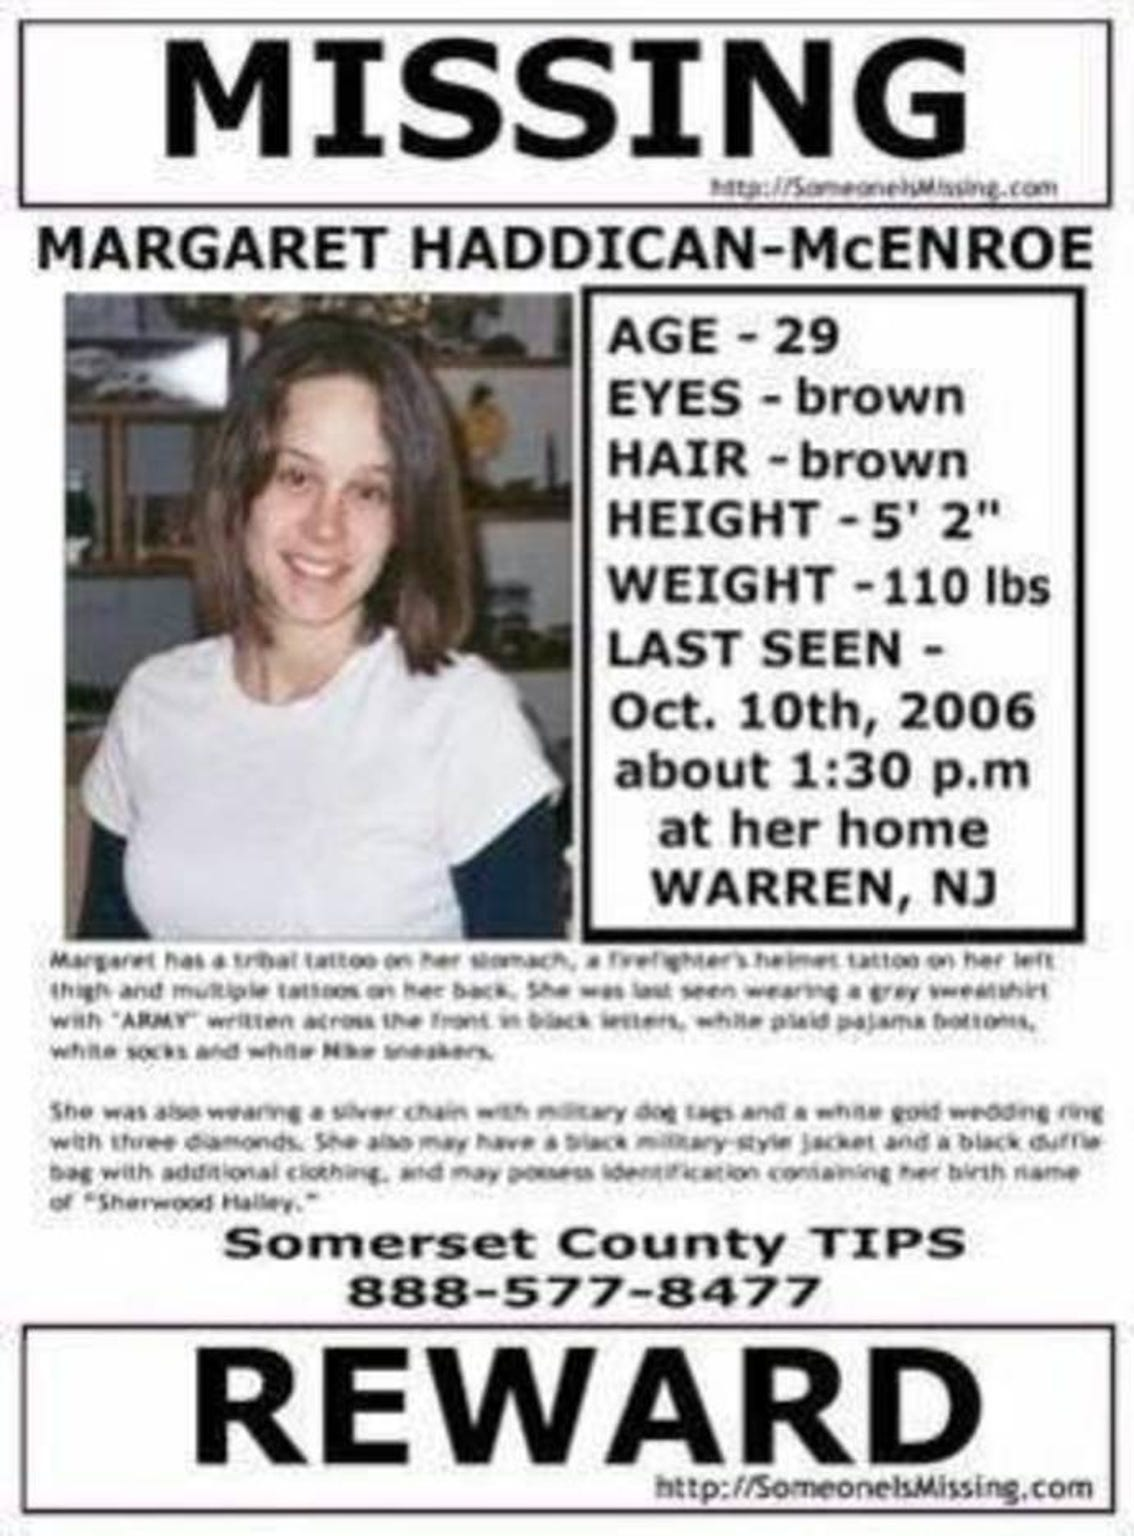 Margaret Haddican-McEnroe missing persons poster